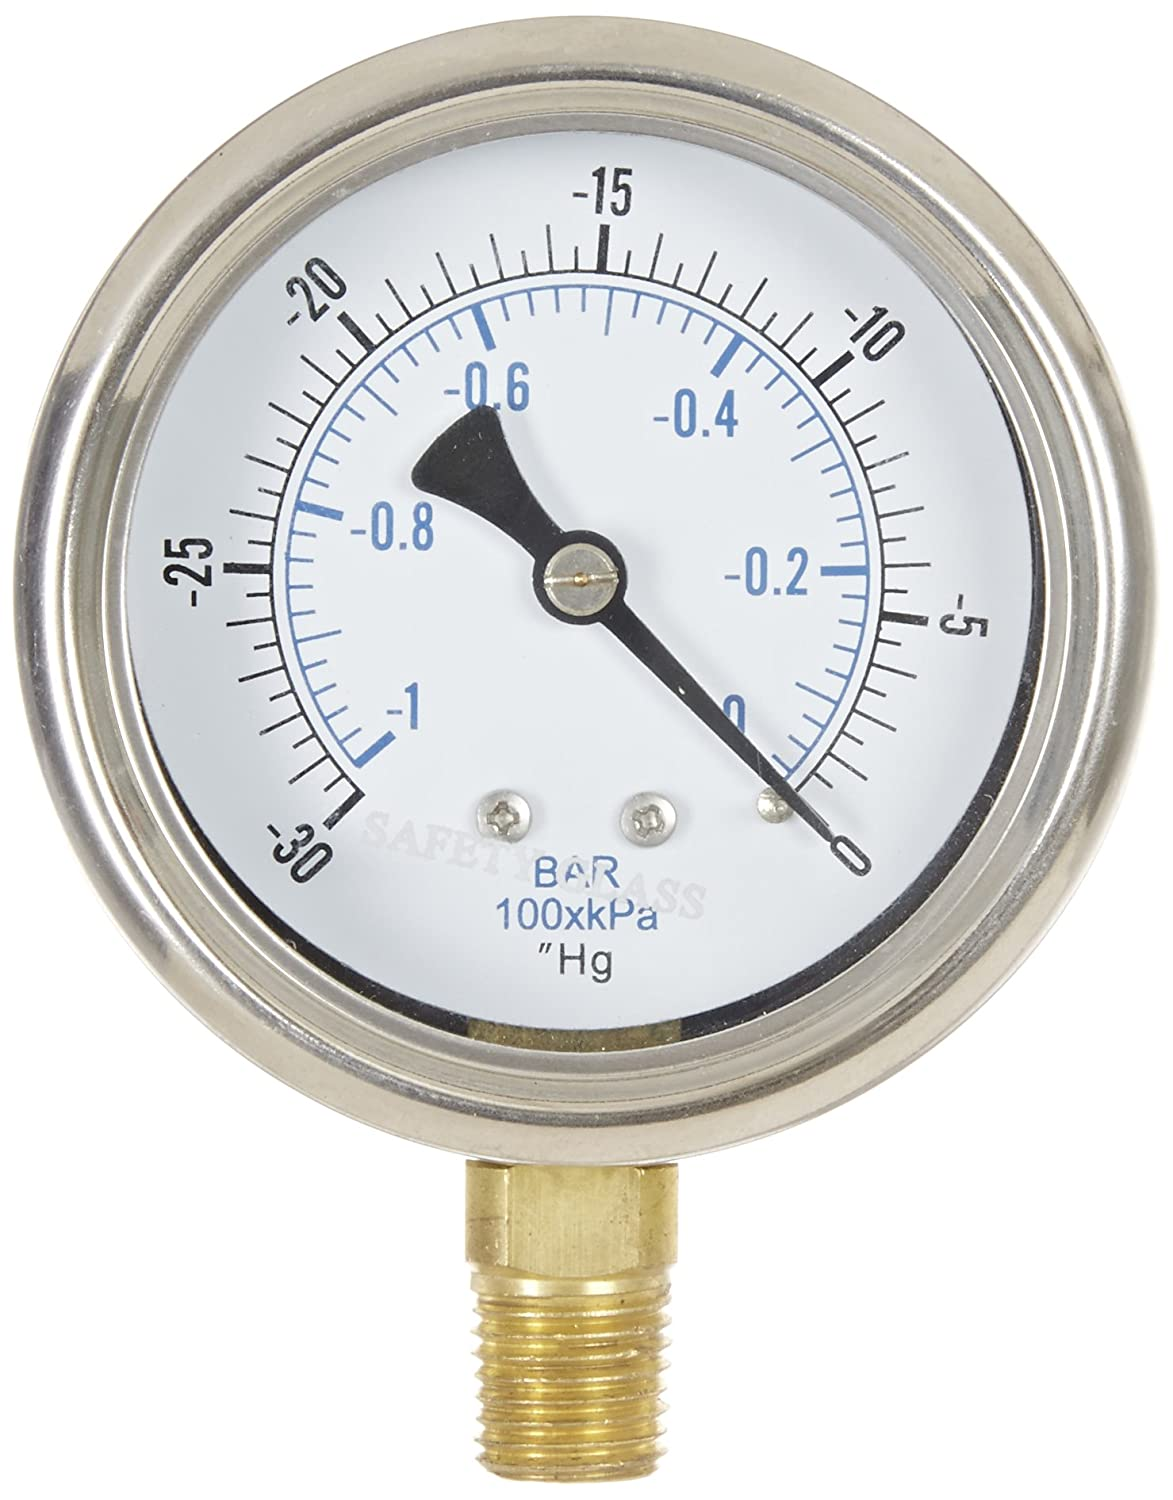 "PIC Gauge 211D-254A 2.5"" Dial, 30""/0 hg Vacuum psi Range, 1/4"" Male NPT Connection Size, Bottom Mount Dry Pressure Gauge with a Stainless Steel Case, Brass Internals, Removable Stainless Steel Bezel, and Glass Lens"